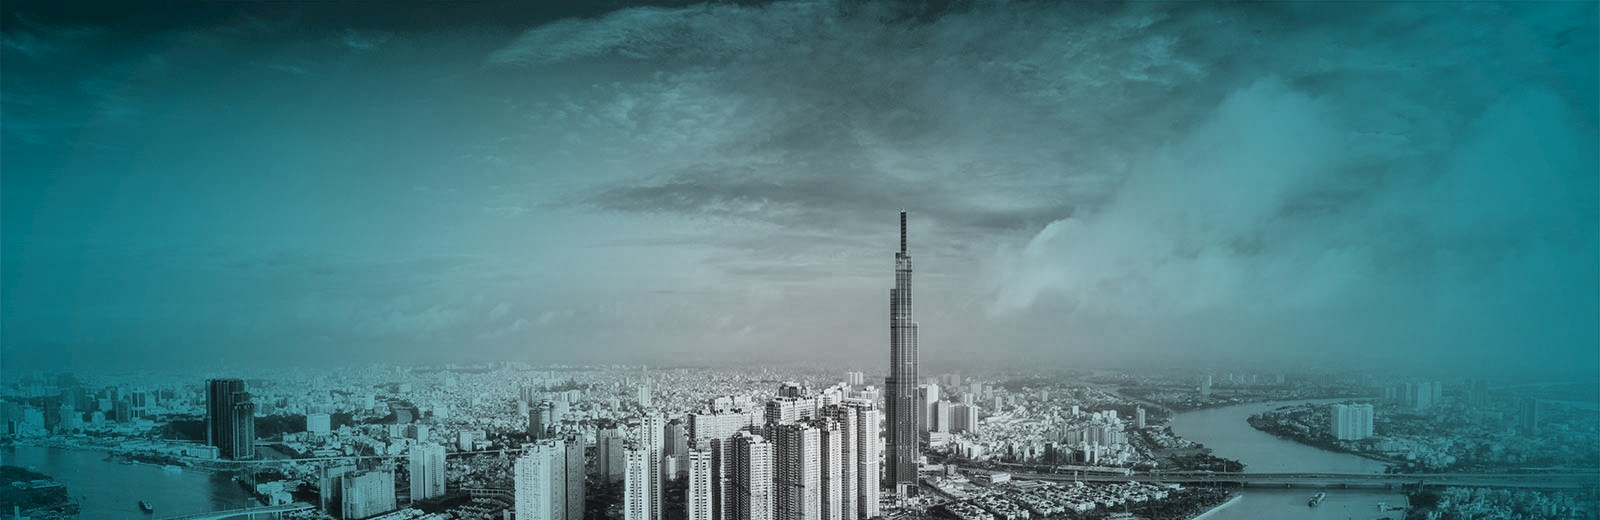 Tinted View of Vietnam Sky Scrappers - Mace Group